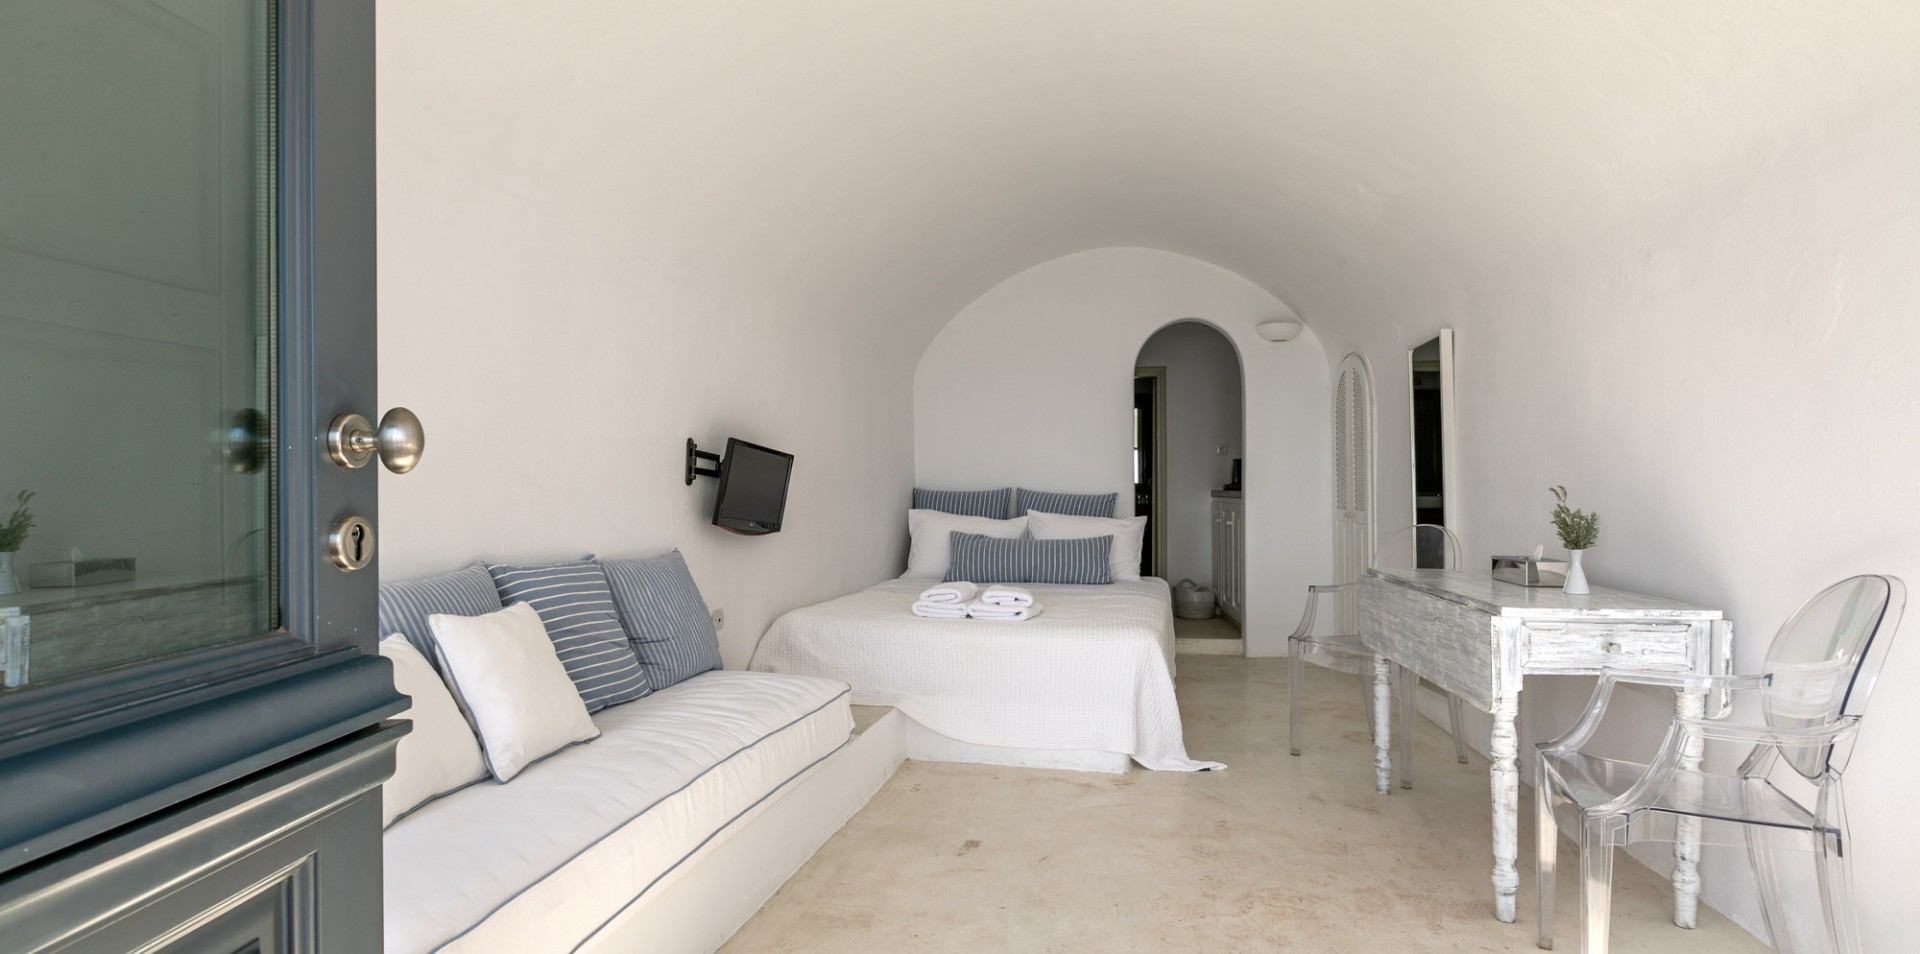 The interior of the luxury studio of Nostos Apartments in Oia Santorini